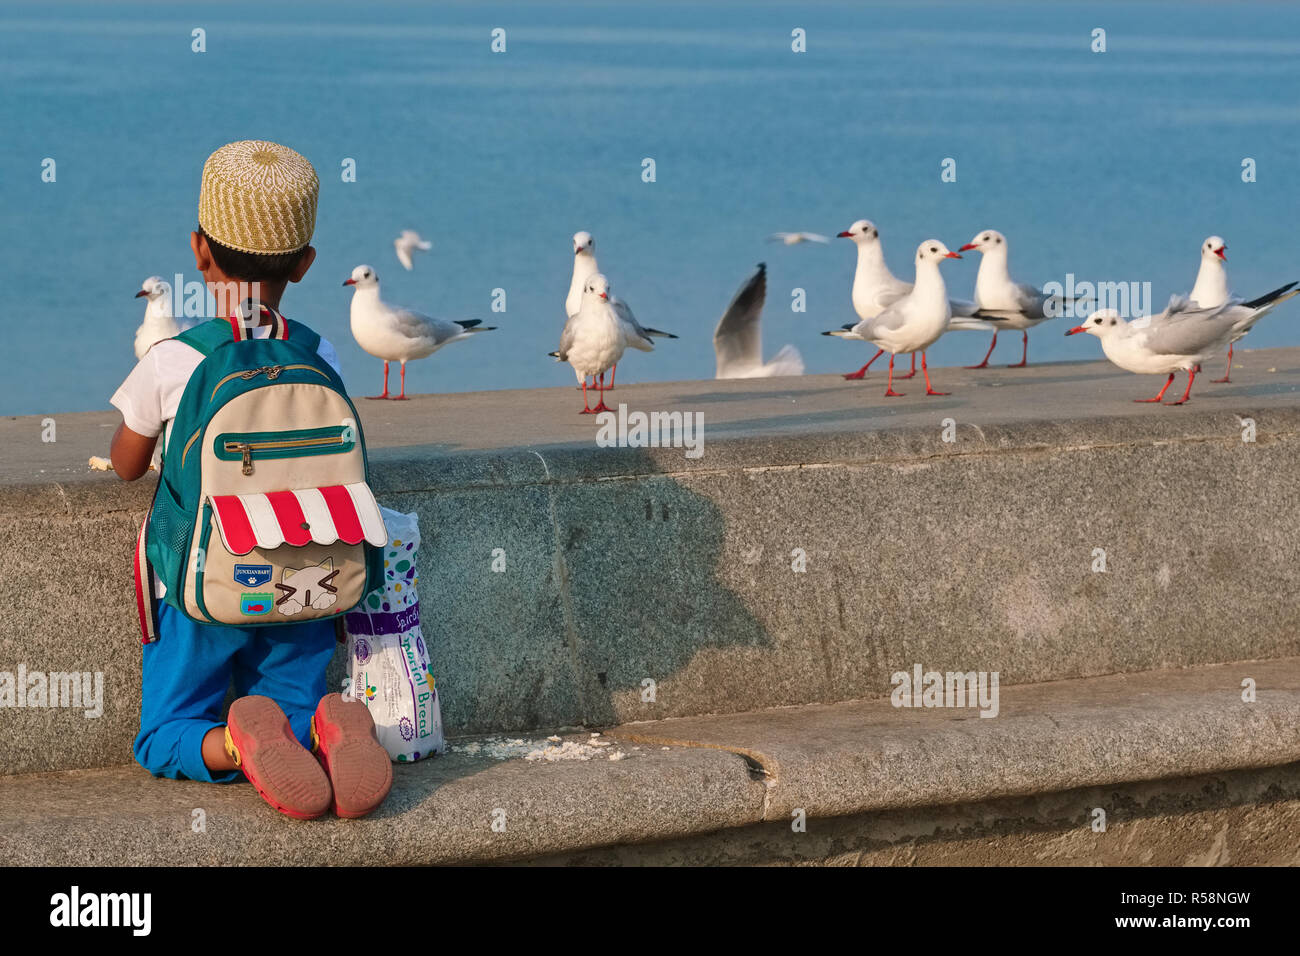 A schoolboy at Marine Drive, a boulevard by the Arabian Sea in Mumbai, India, seems fascinated by migratory seagulls spending the winter in the city - Stock Image